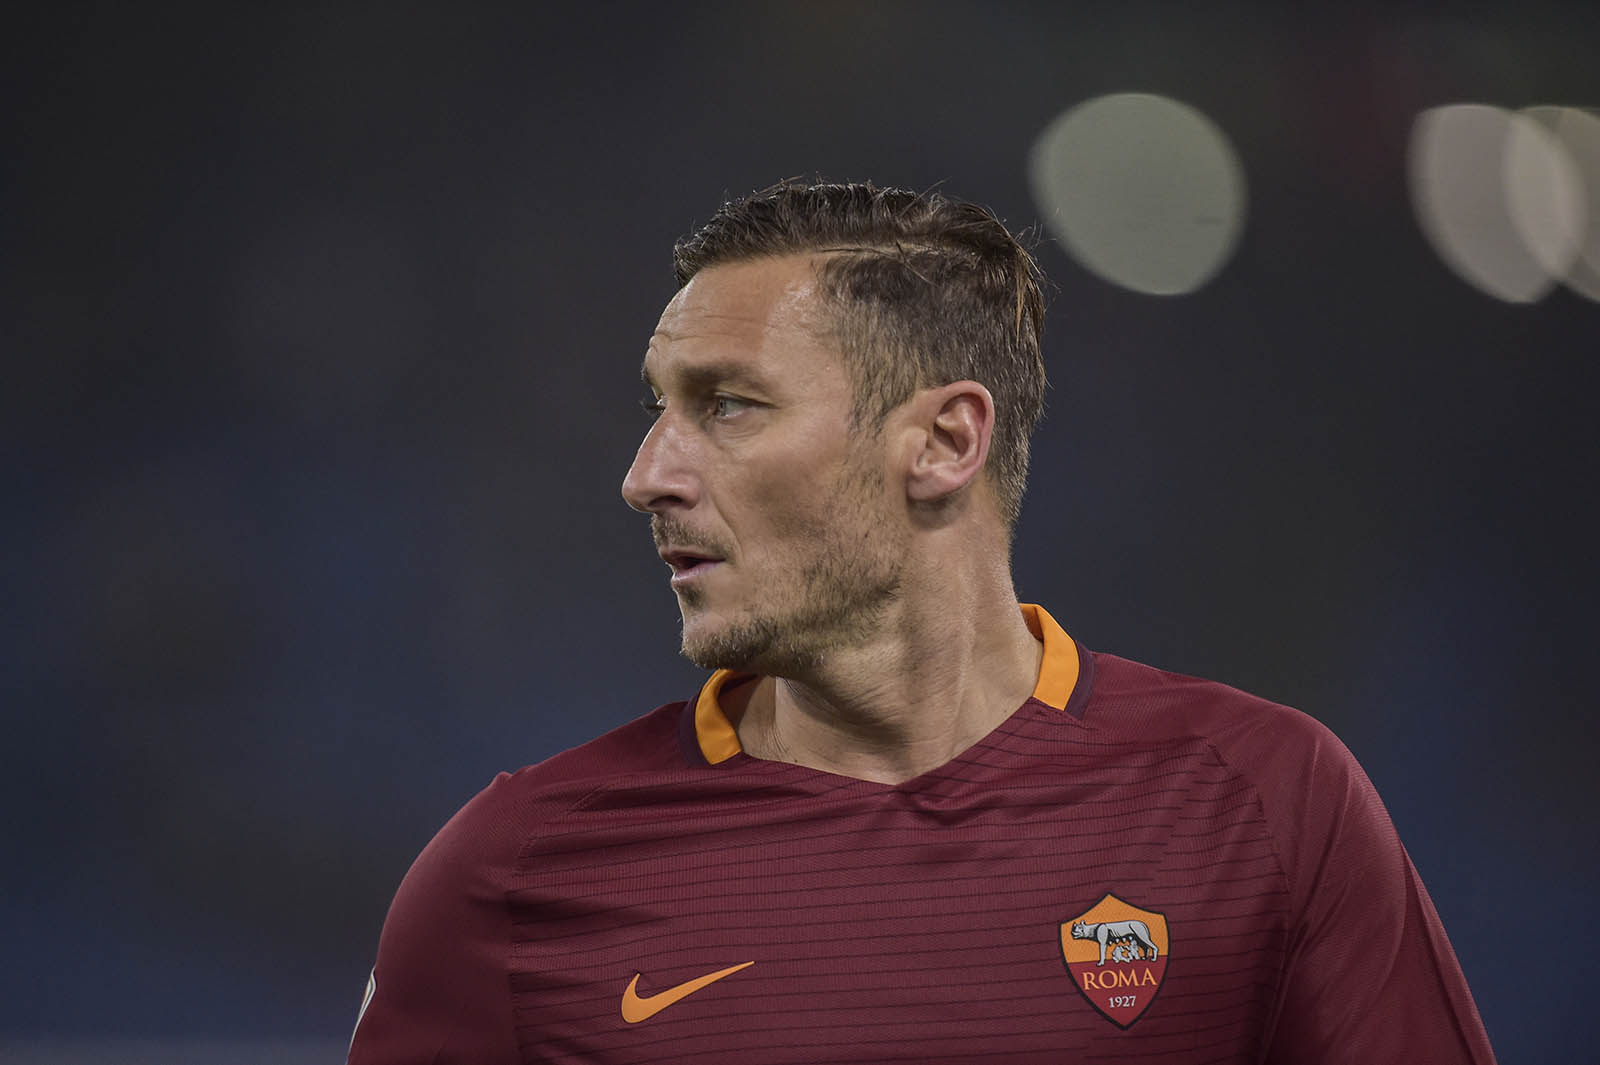 http://res.cloudinary.com/as-roma-turbine-production/image/upload/v1/asroma-uat/x25qg9xahxqjftrc7je0